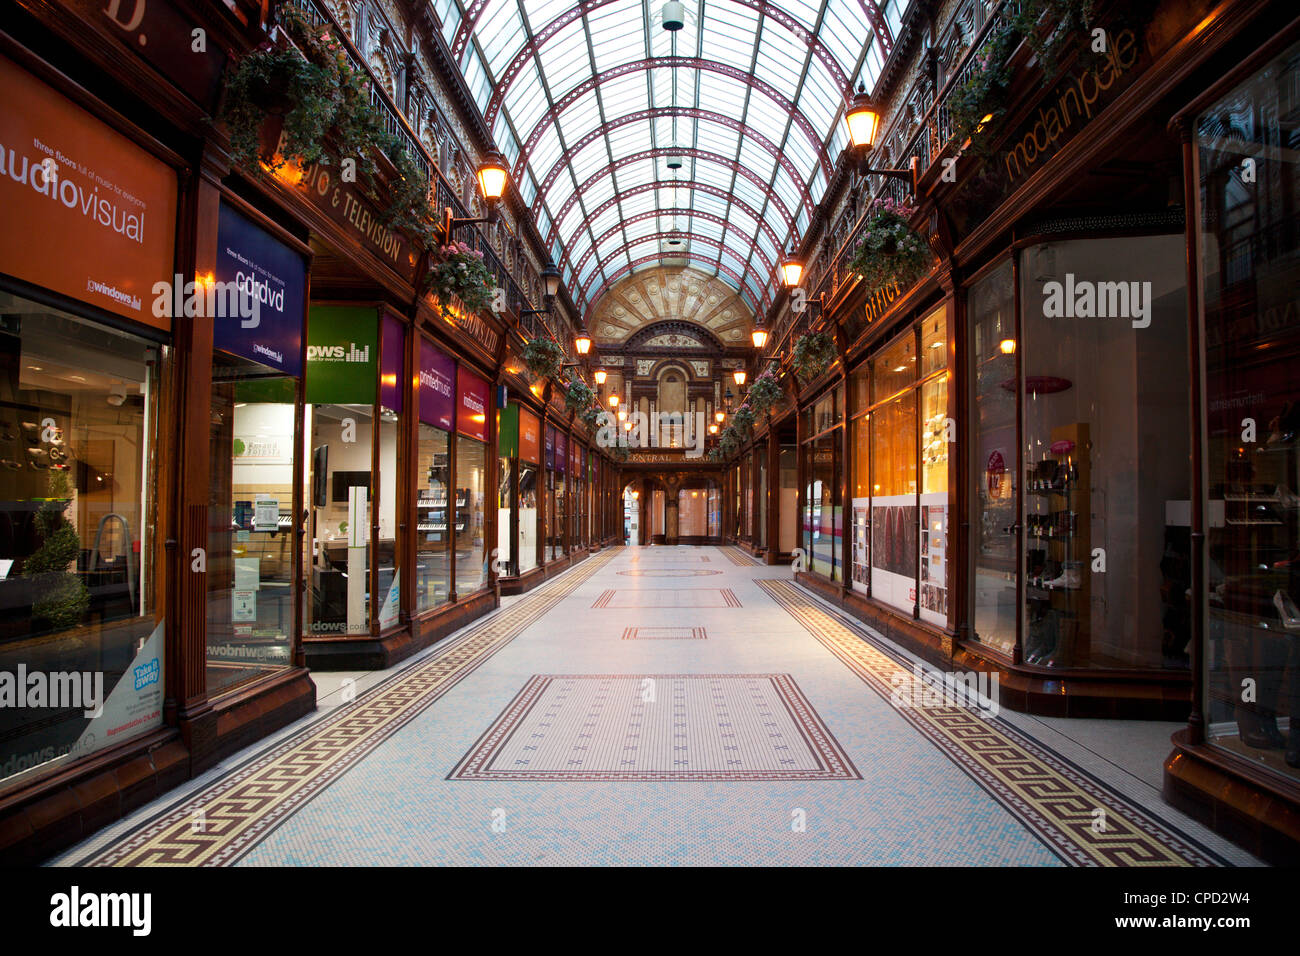 Central Arcade, Newcastle upon Tyne, Tyne and Wear, England, United Kingdom, Europe - Stock Image